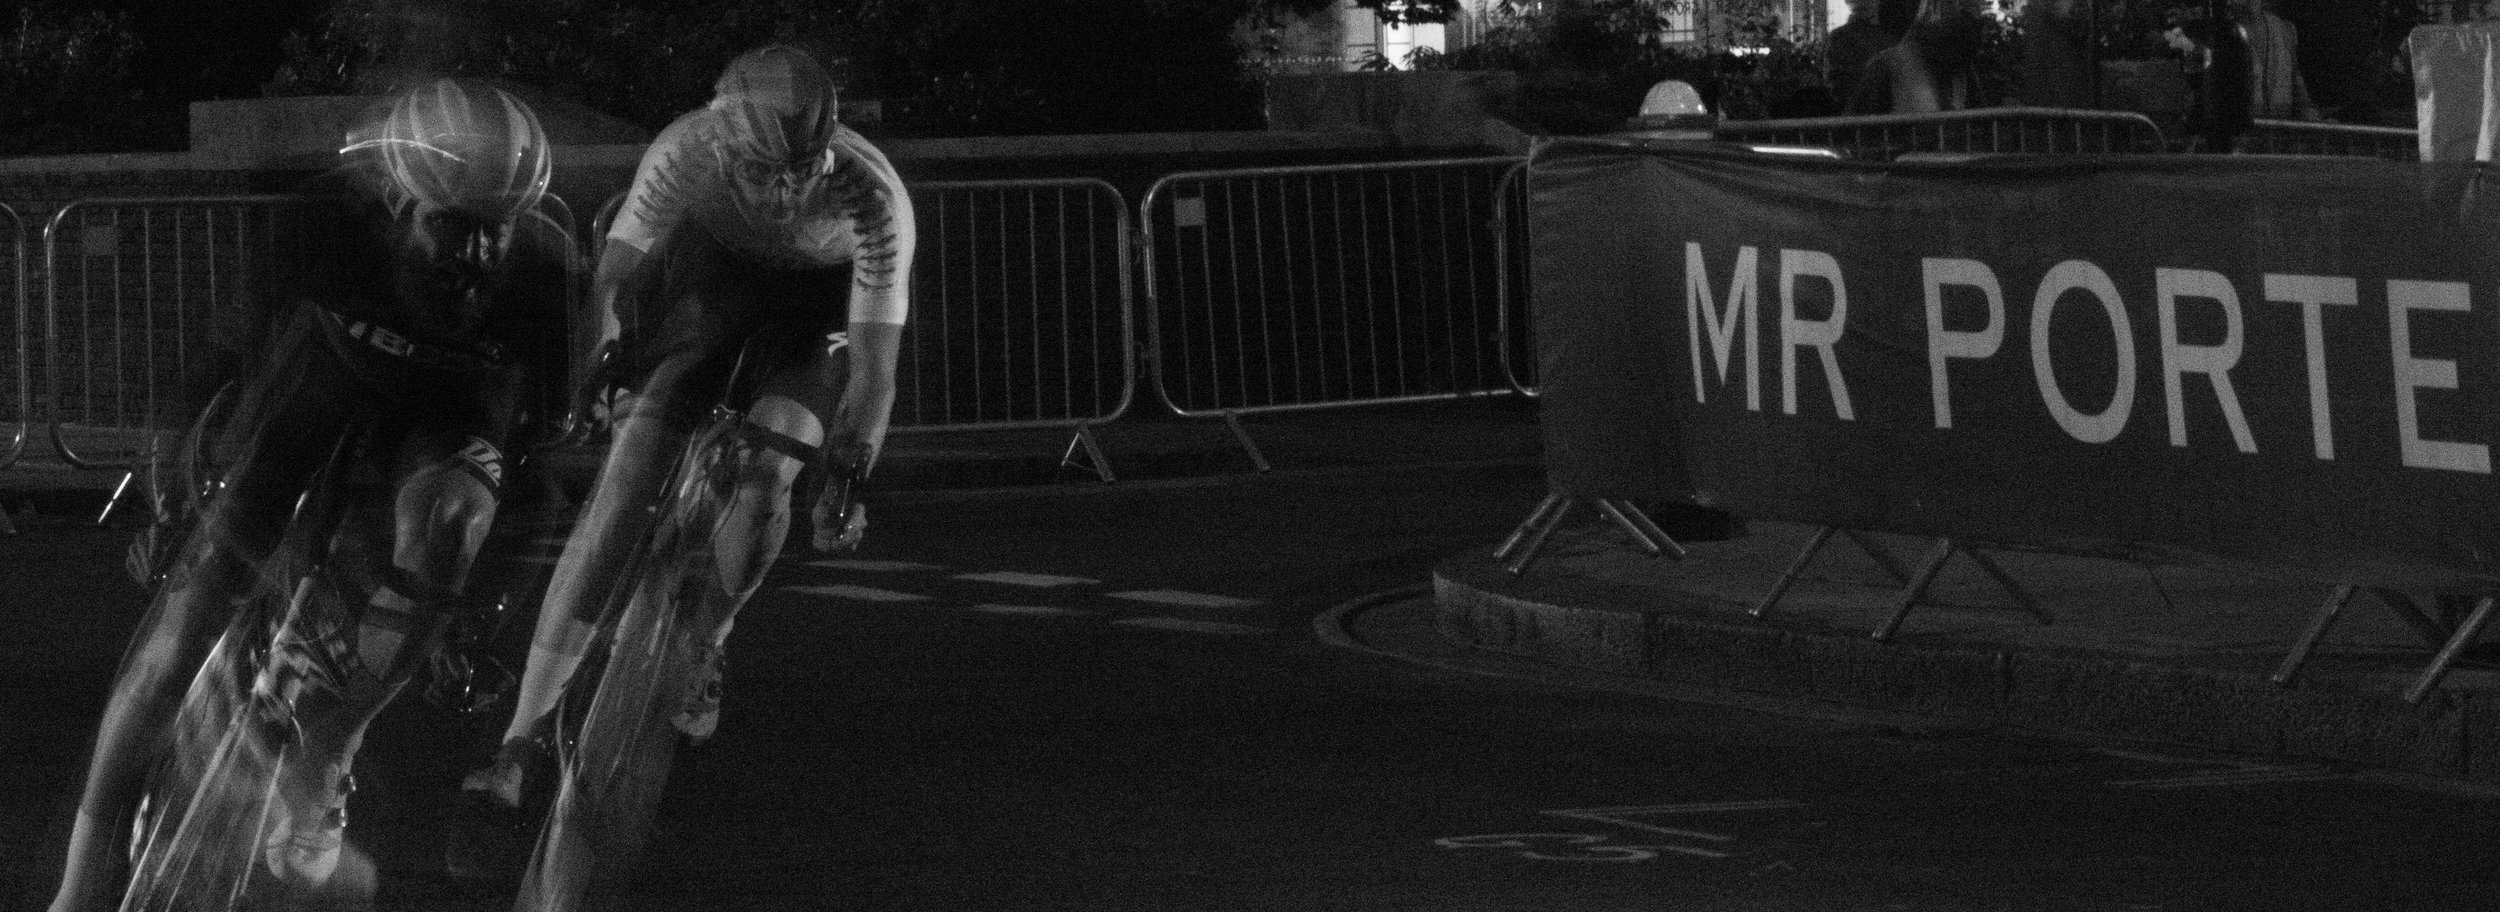 London Nocturne-296.jpg